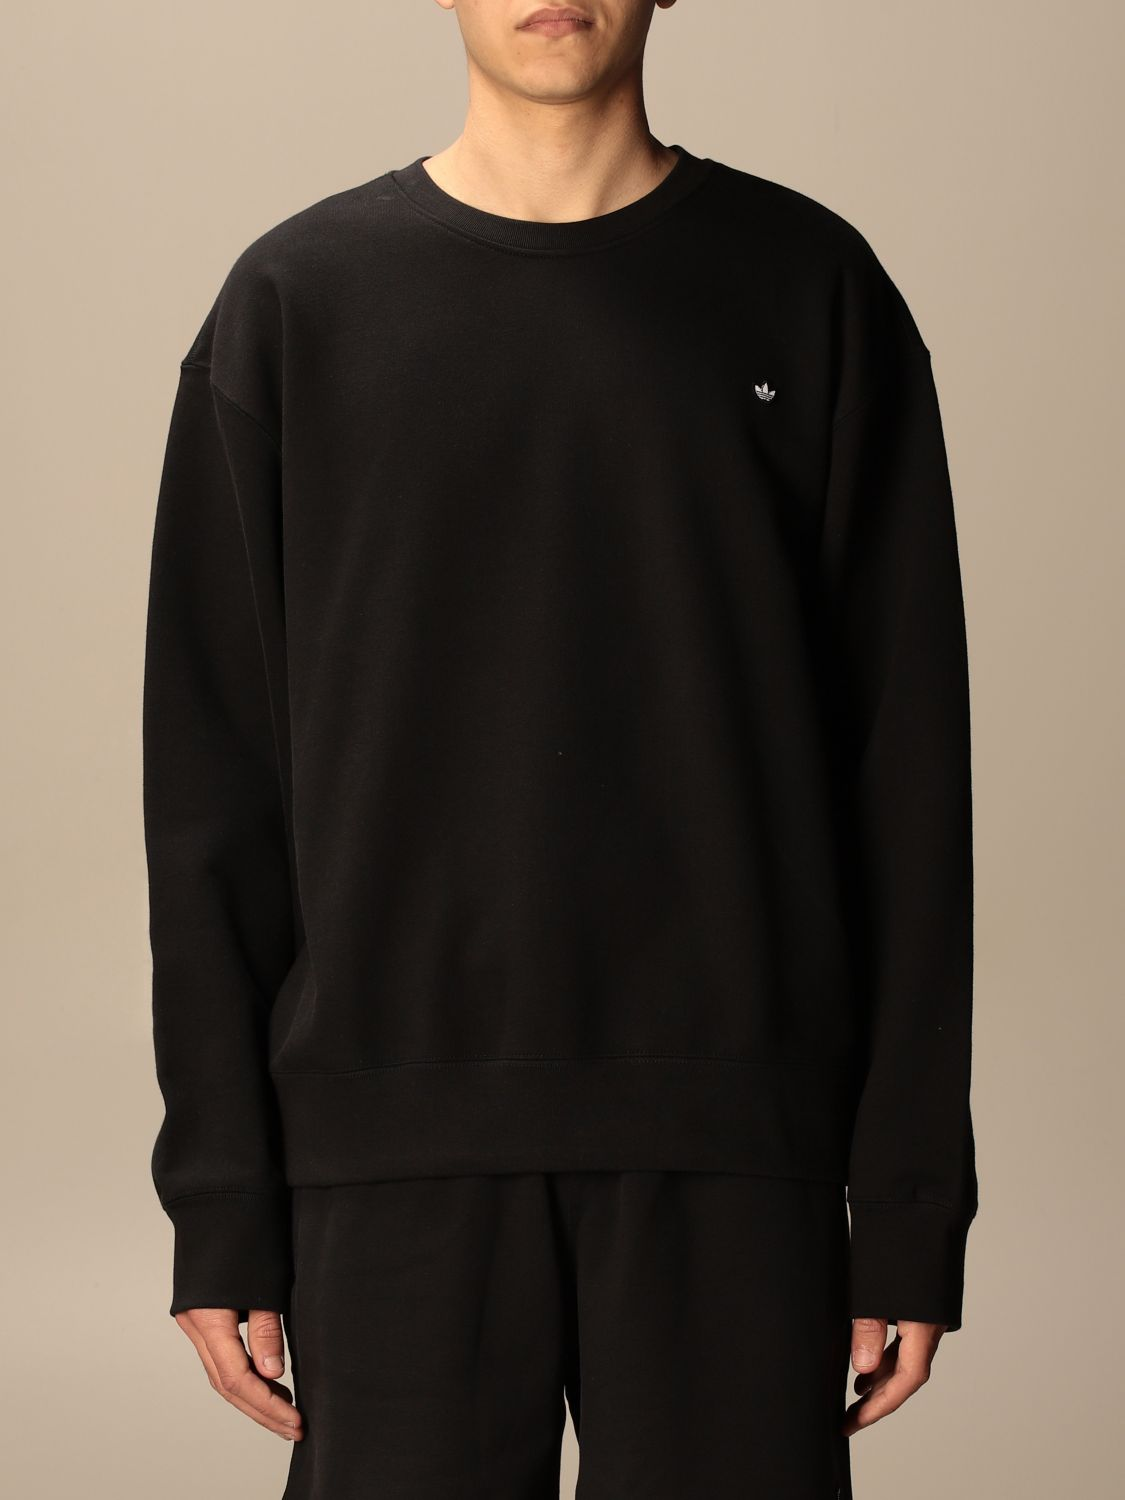 Sweatshirt Adidas Originals: Sweatshirt men Adidas Originals black 1